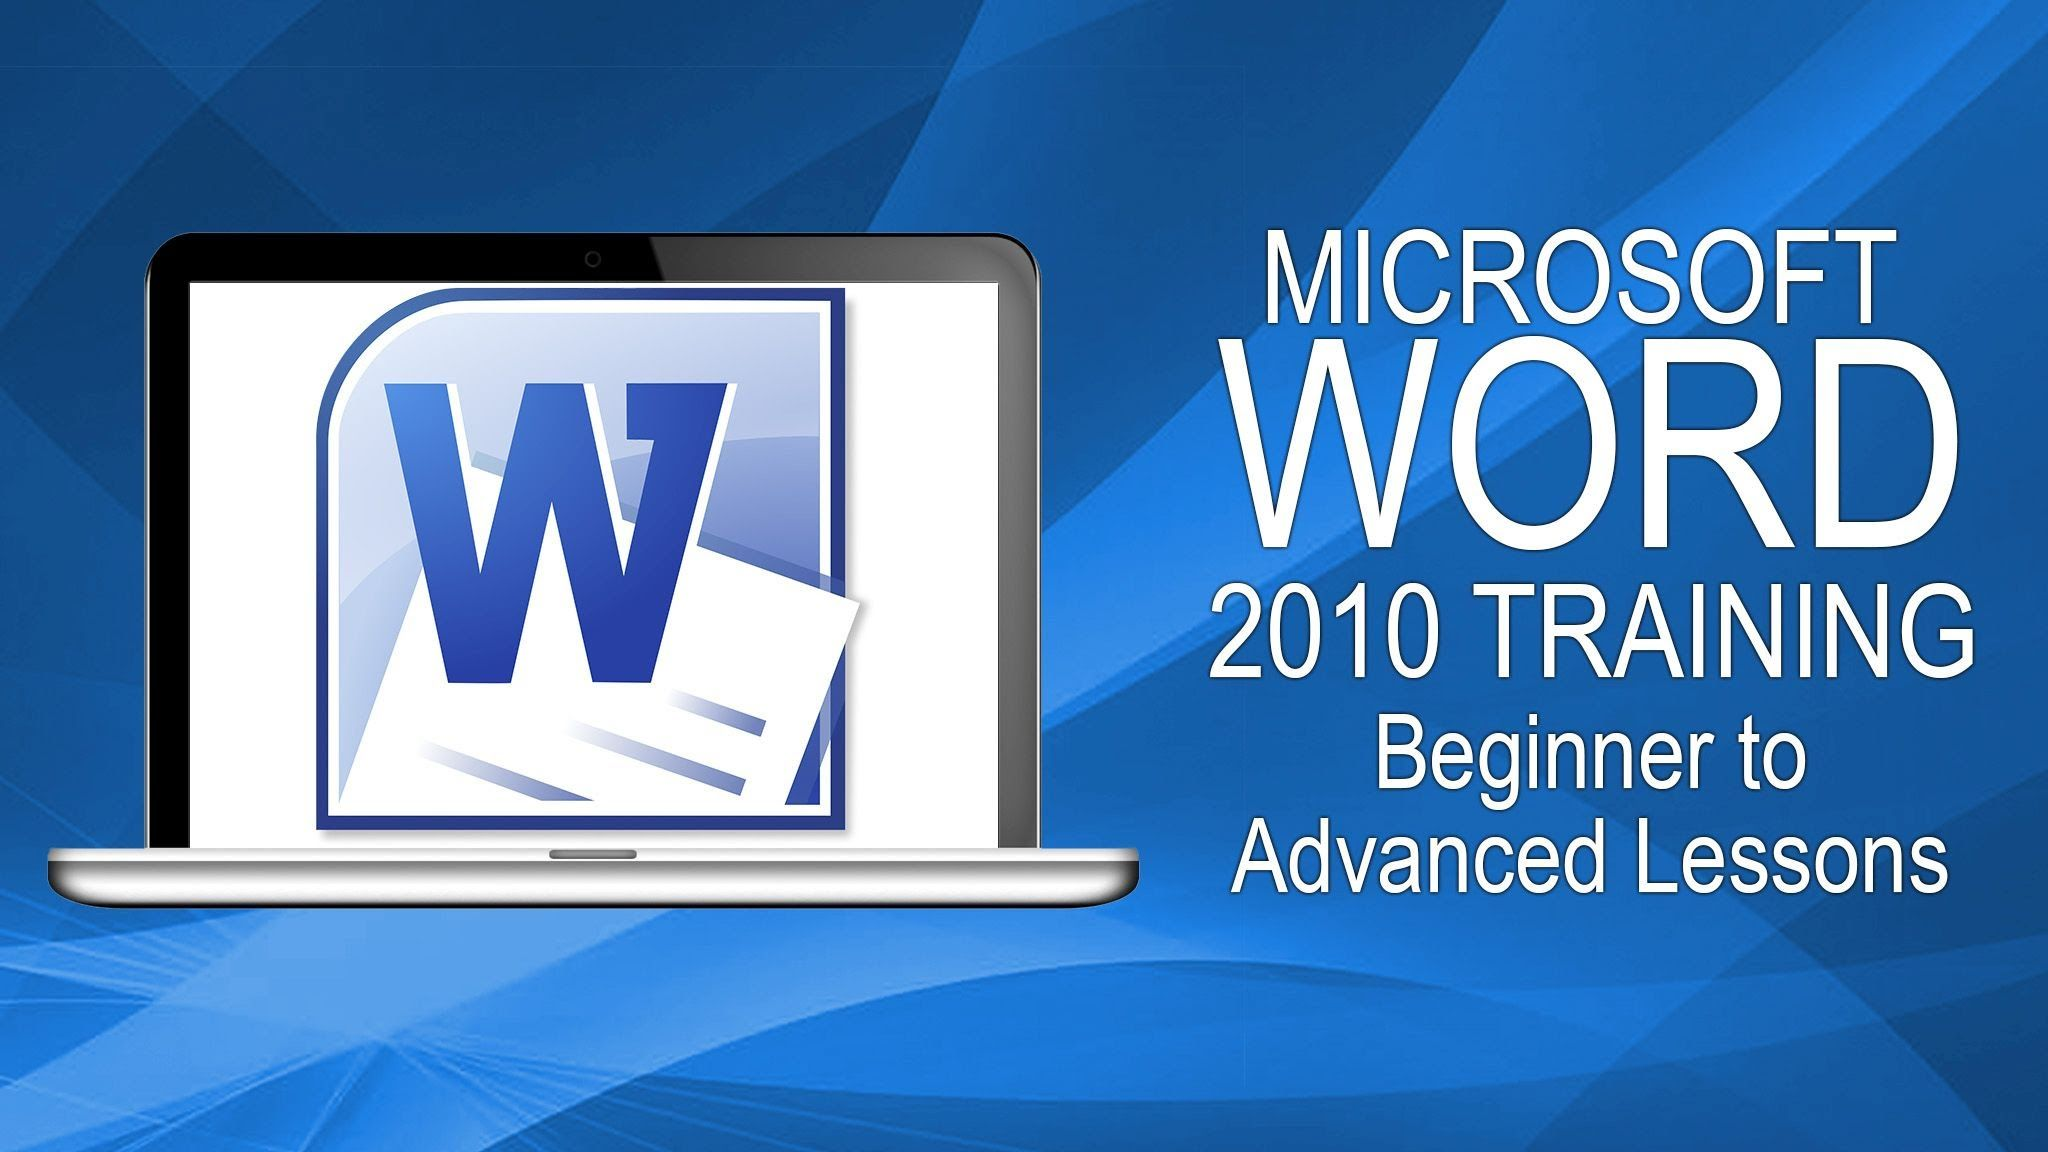 This complete microsoft word 2010 for beginners to advanced this complete microsoft word 2010 for beginners to advanced training course from http xflitez Images